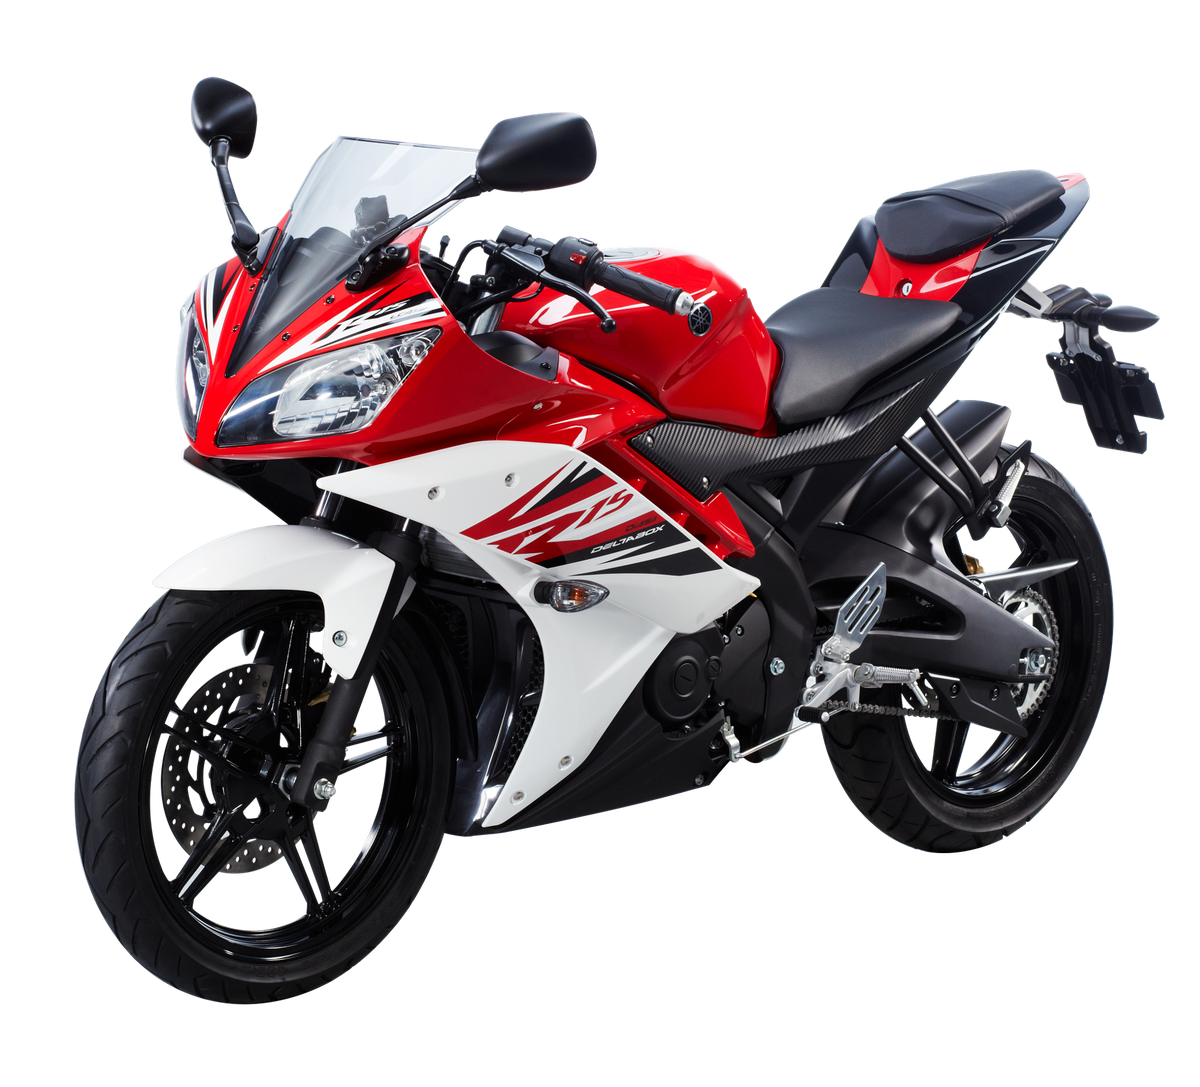 Yamaha R15 Pictures  Yamaha R15 Images and Photos in